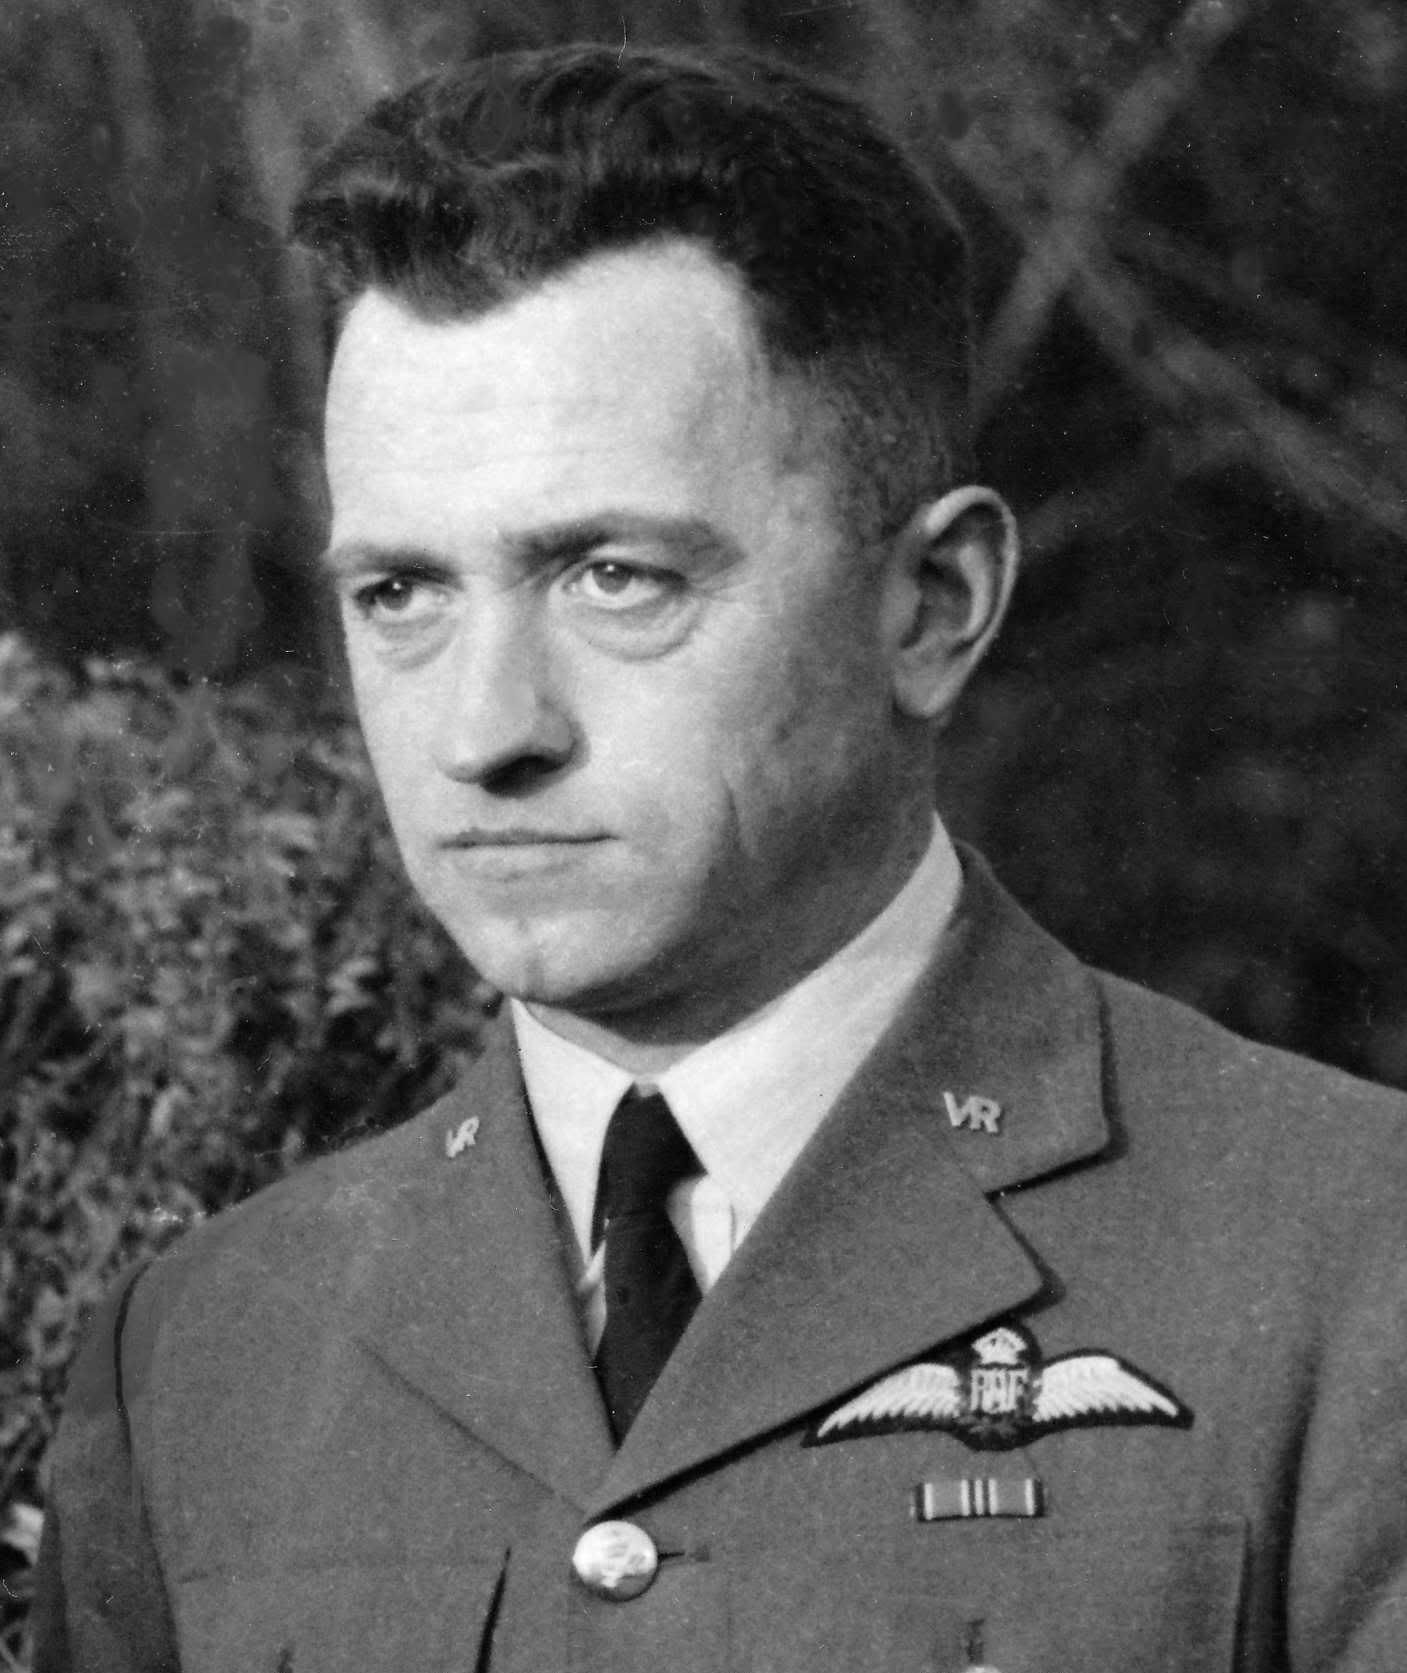 One of 38 Czechoslovak airmen who left on the last BOAC flight from Merignac, P/O František Rypl reached RAF Hendon on 17 June 1940. Posted to No 310 Squadron RAF on 12 July, the 32-year-old pilot flew on their first operational patrol on 17 August. On 9 September, whilst in combat with enemy fighters south of London, he was shot up in Hurricane Mk I NN-M, making a forced landing near Oxted.